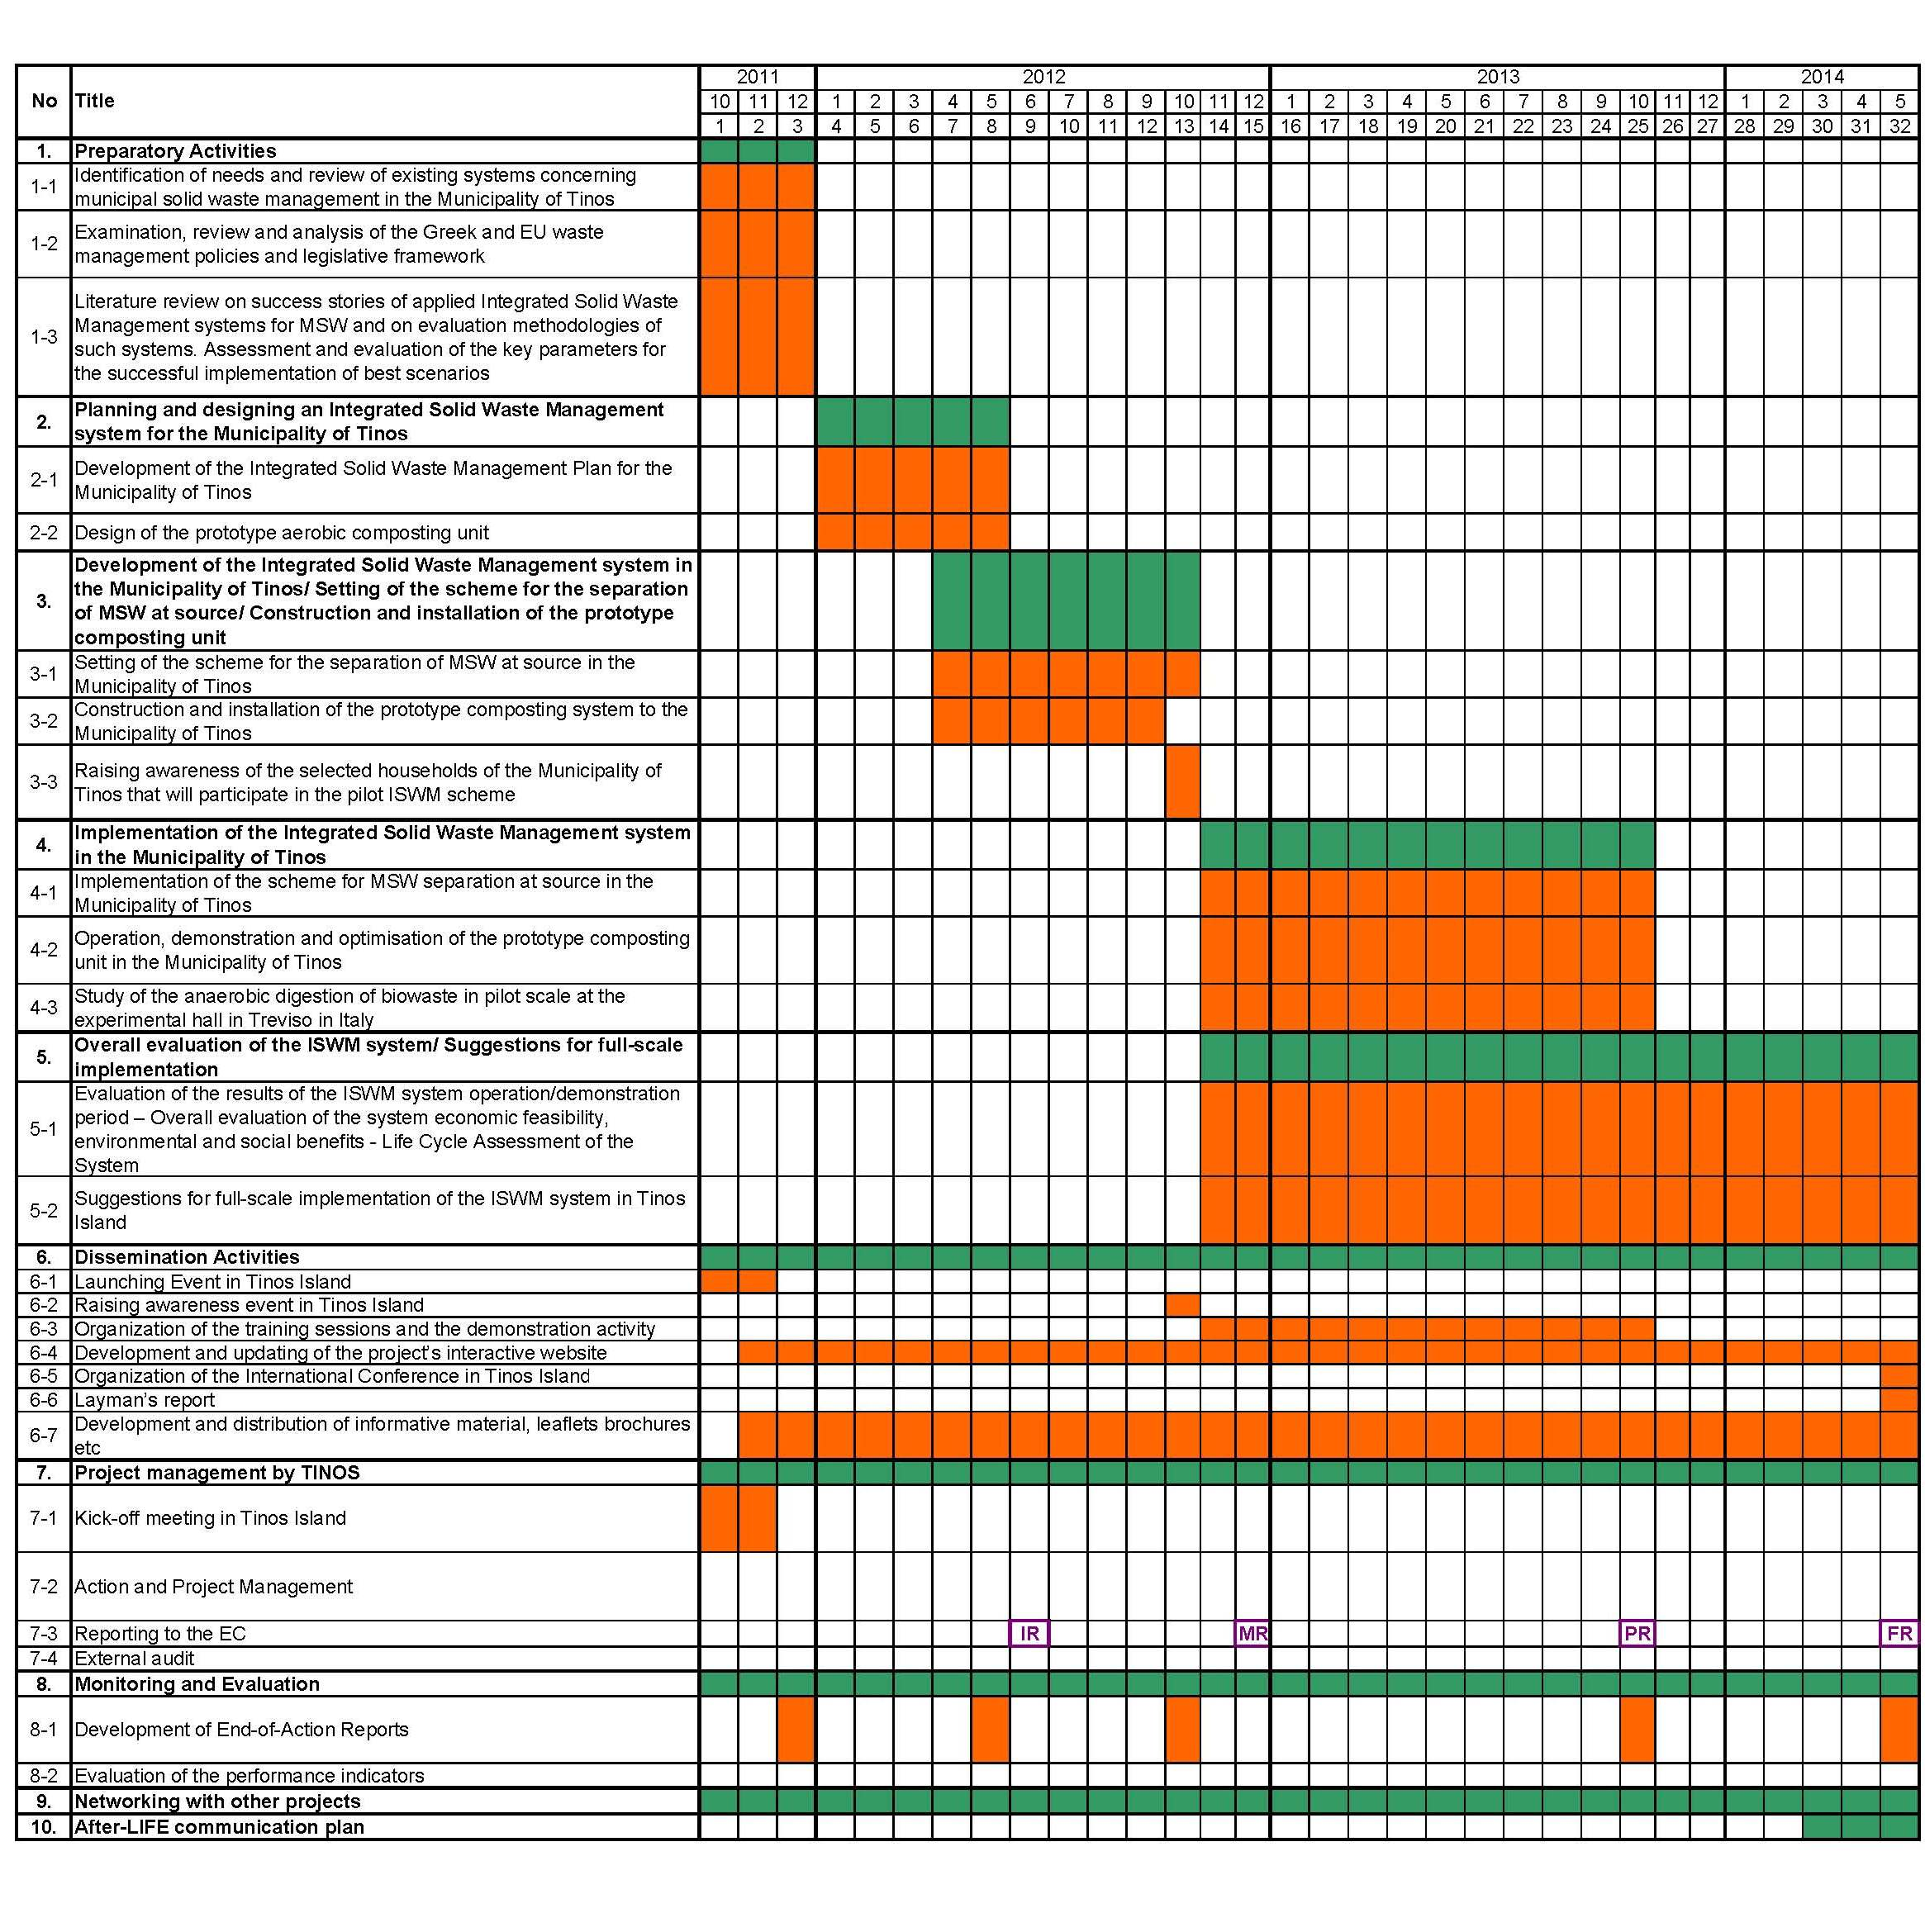 Doc600247 Project Timetable Project timetable 98 Similar – Project Timetable